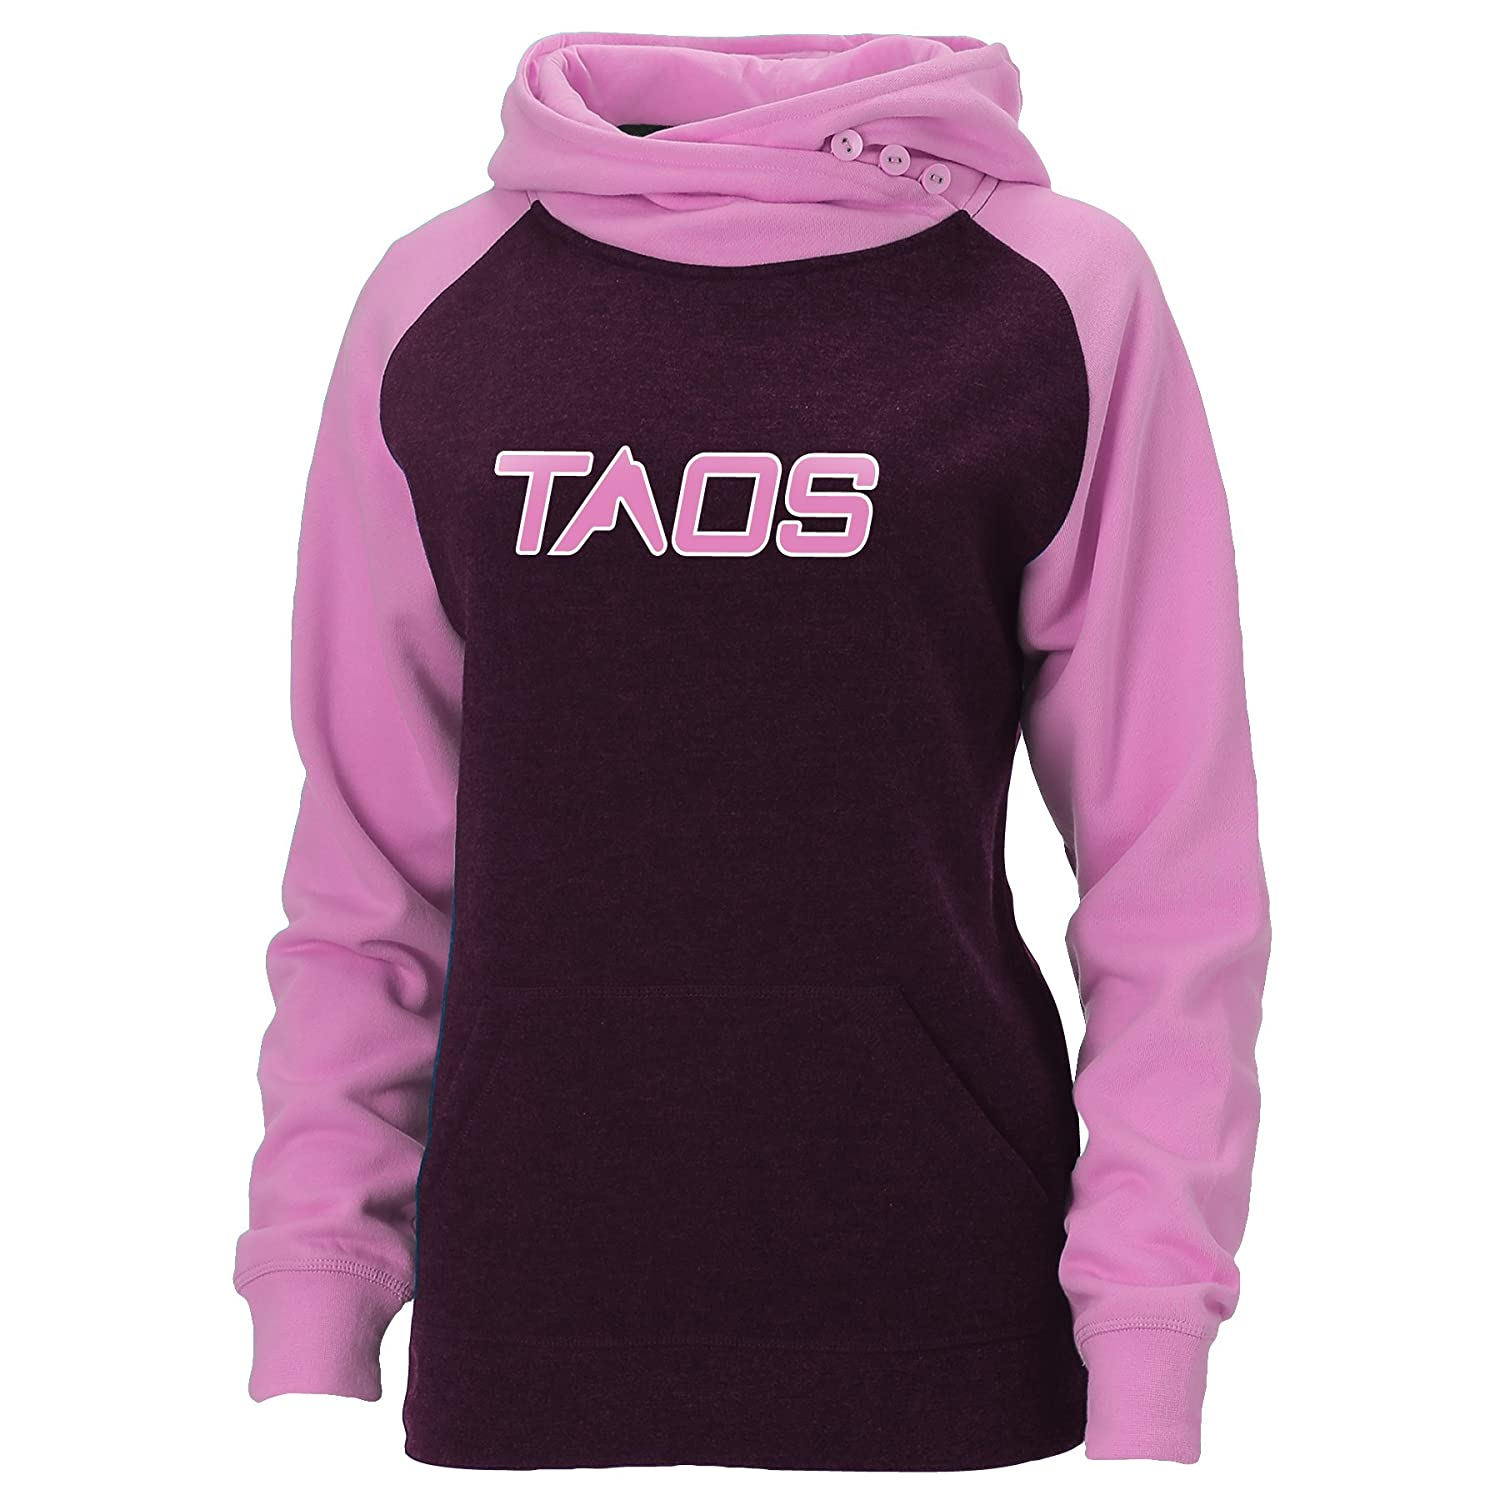 Outdoors Ouray Sportswear Womens Taos Resort Asym Redux Hoodie Ouray